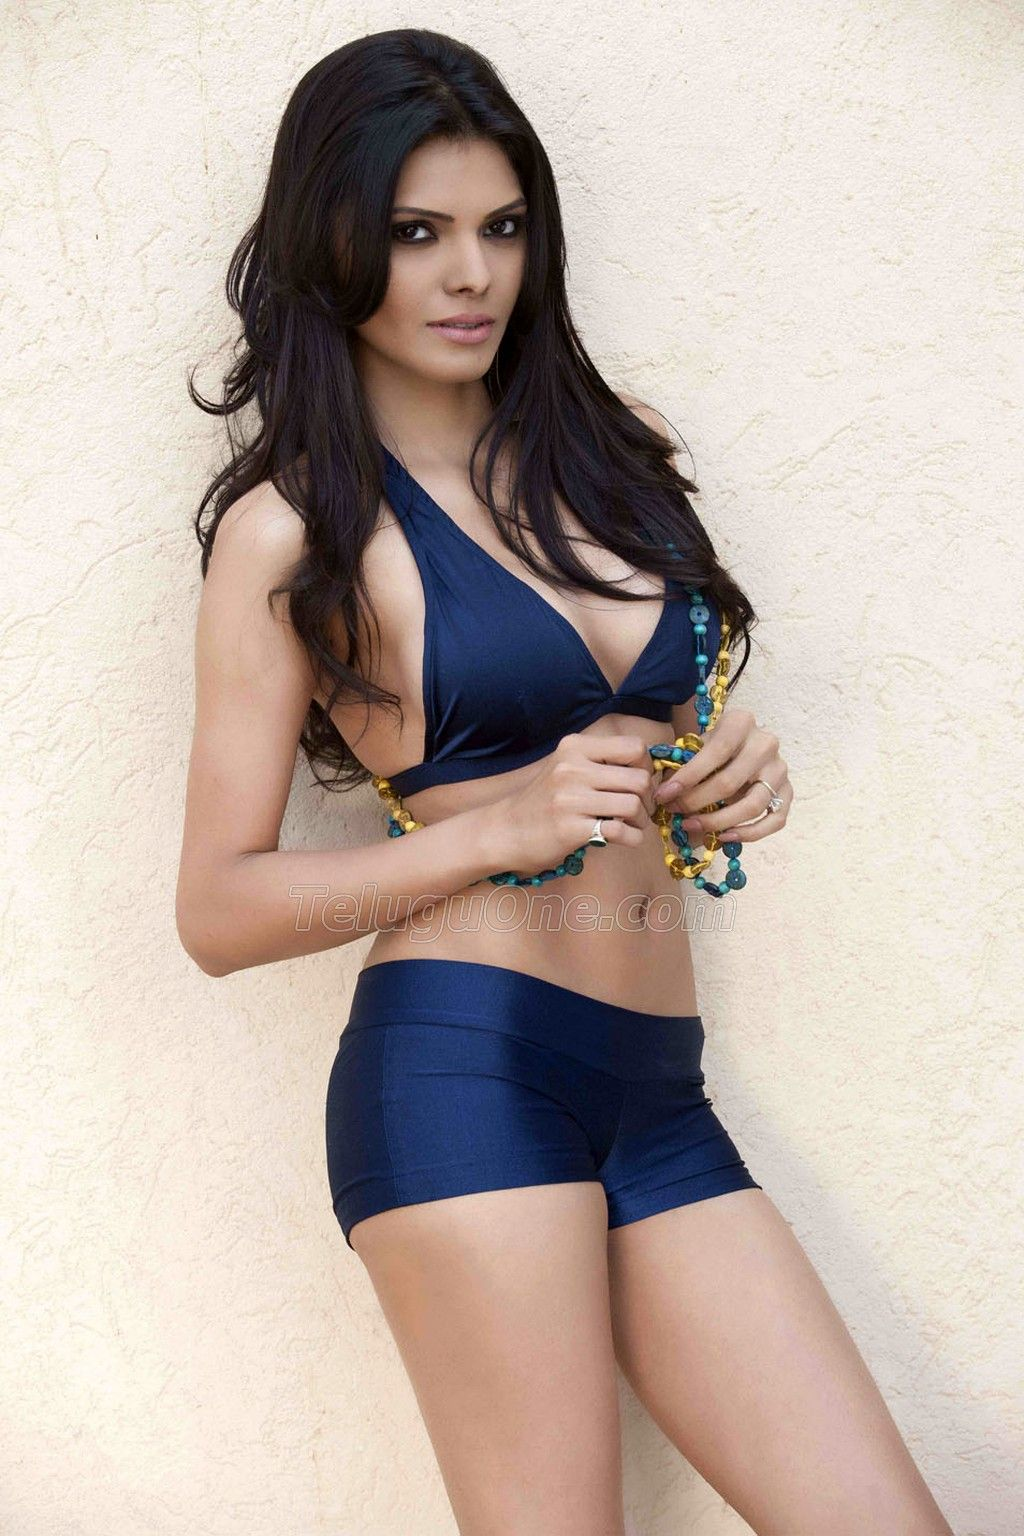 sherlyn chopra hot photos | sherlyn chopra | pinterest | punjabi girls